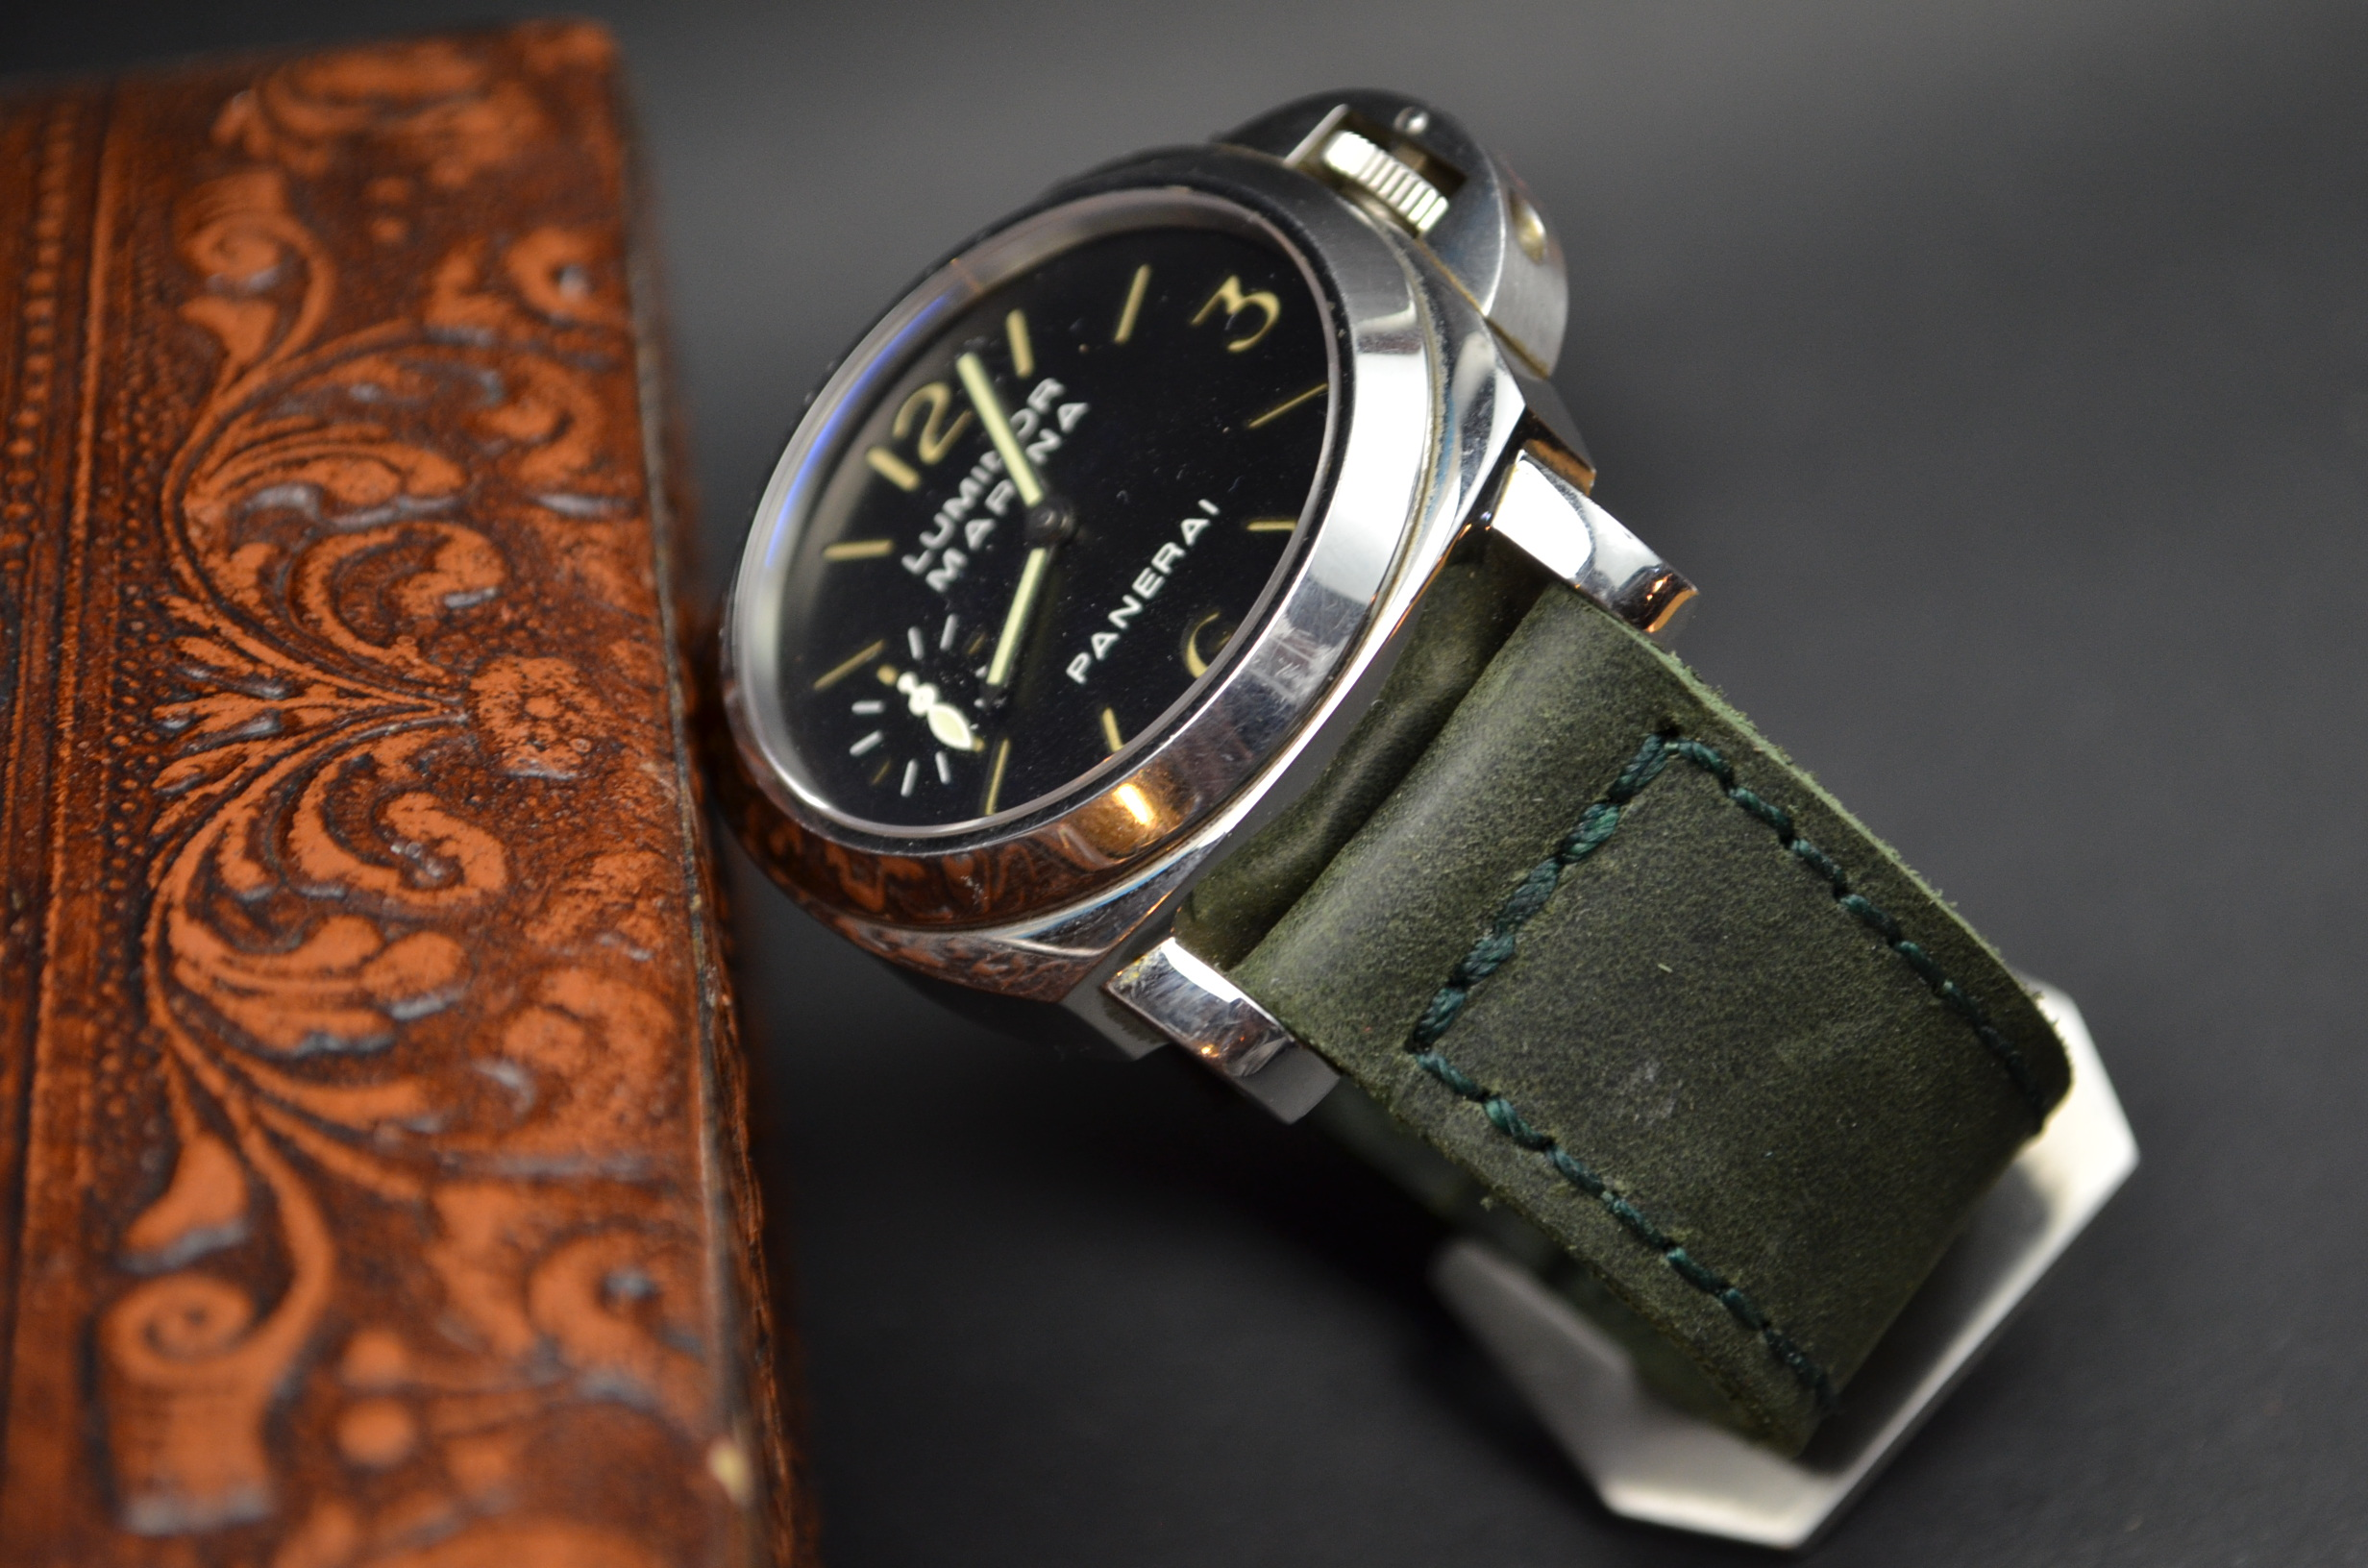 GREEN I is one of our hand crafted watch straps. Available in green color, 4 - 4.5 mm thick.